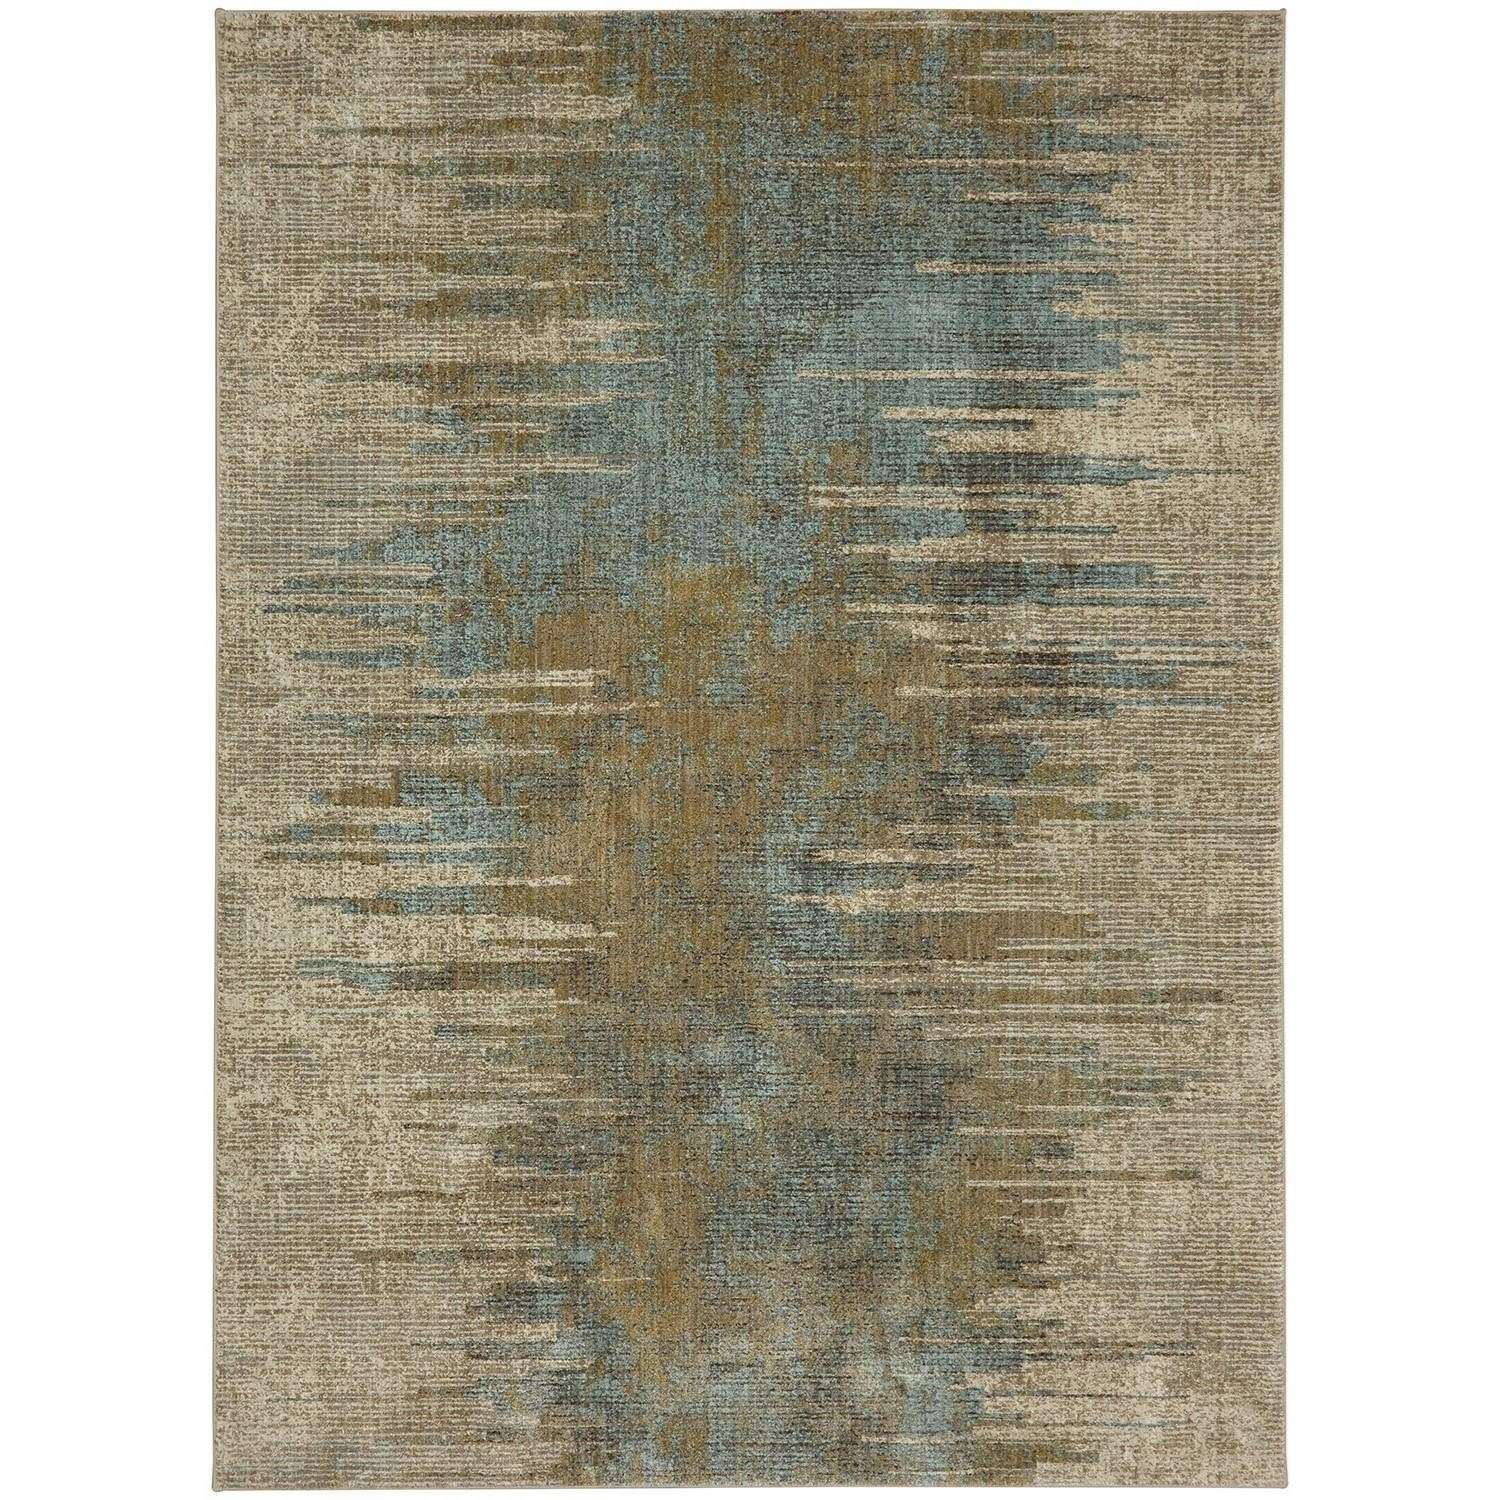 """Touchstone 3' 6""""x5' 6"""" Rectangle Abstract Area Rug by Karastan Rugs at Darvin Furniture"""